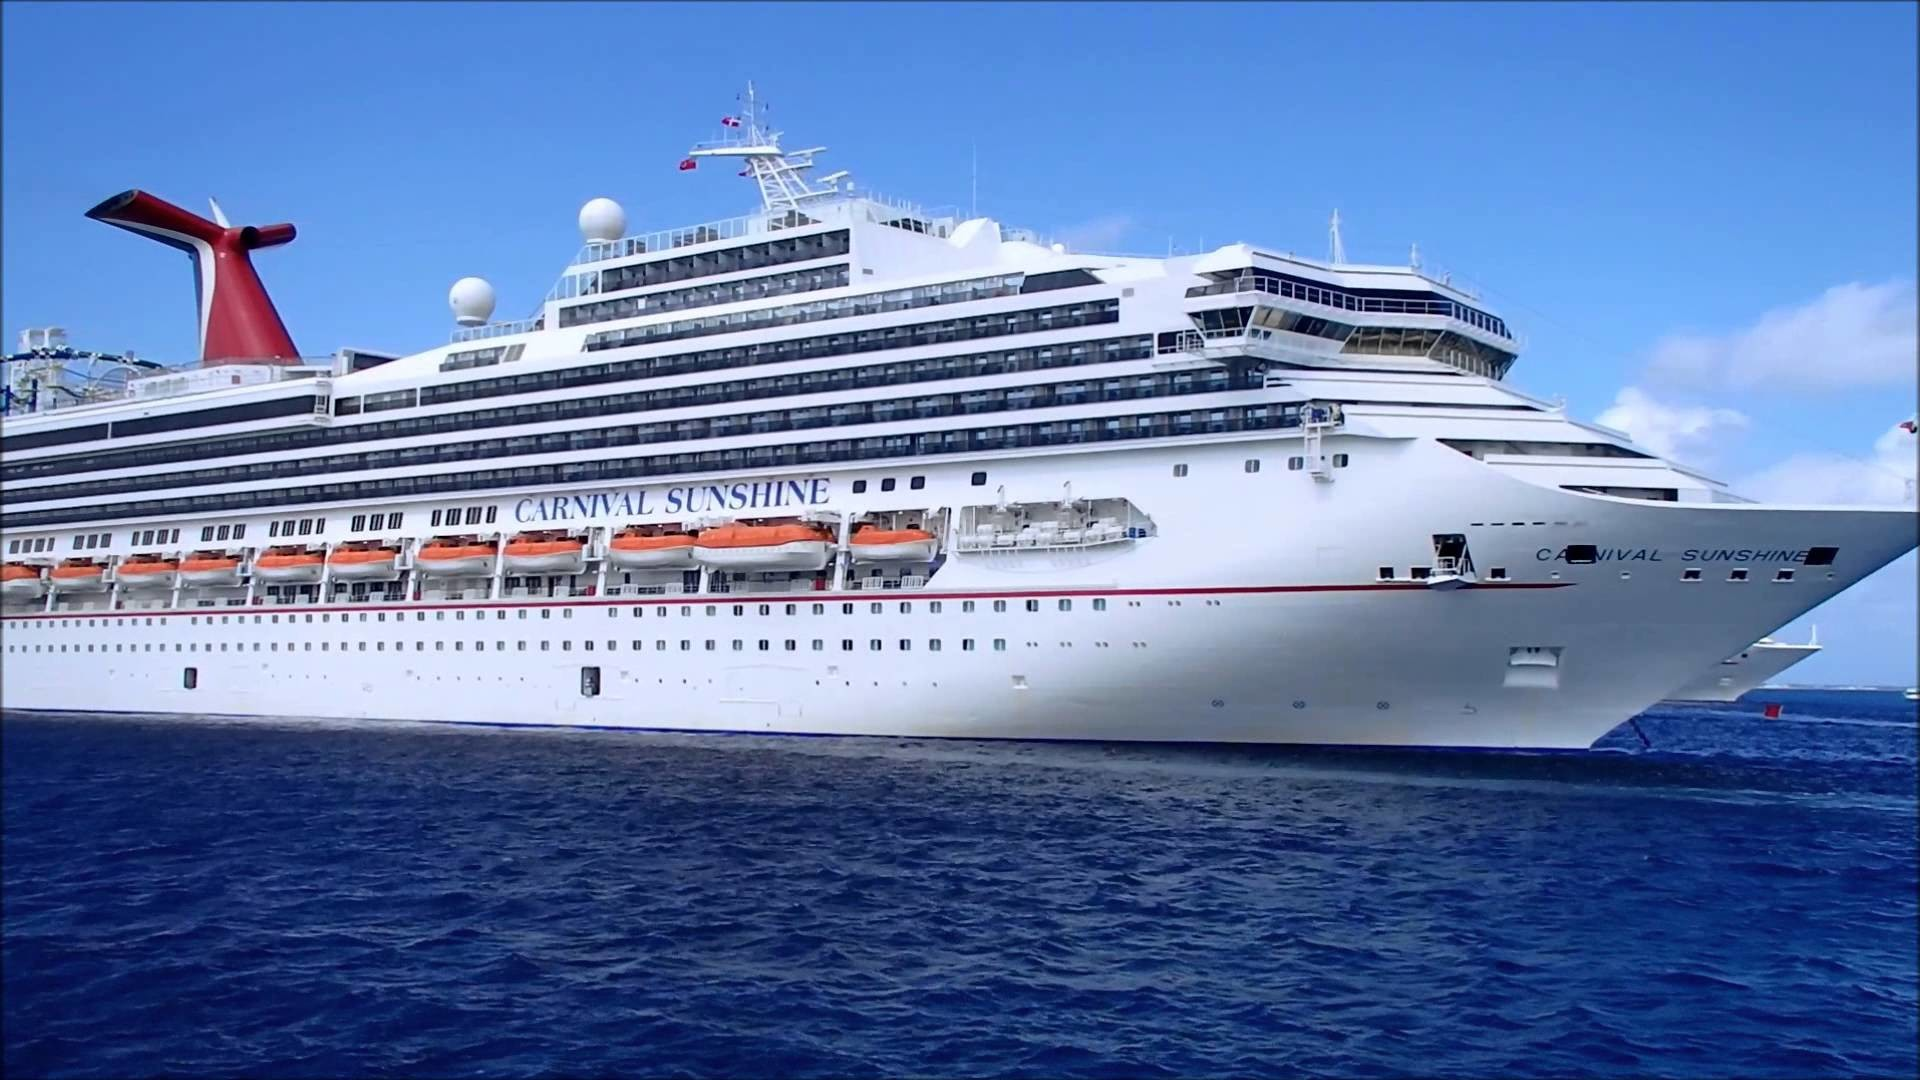 Carnival Cruise Ship Wallpaper 64 Images